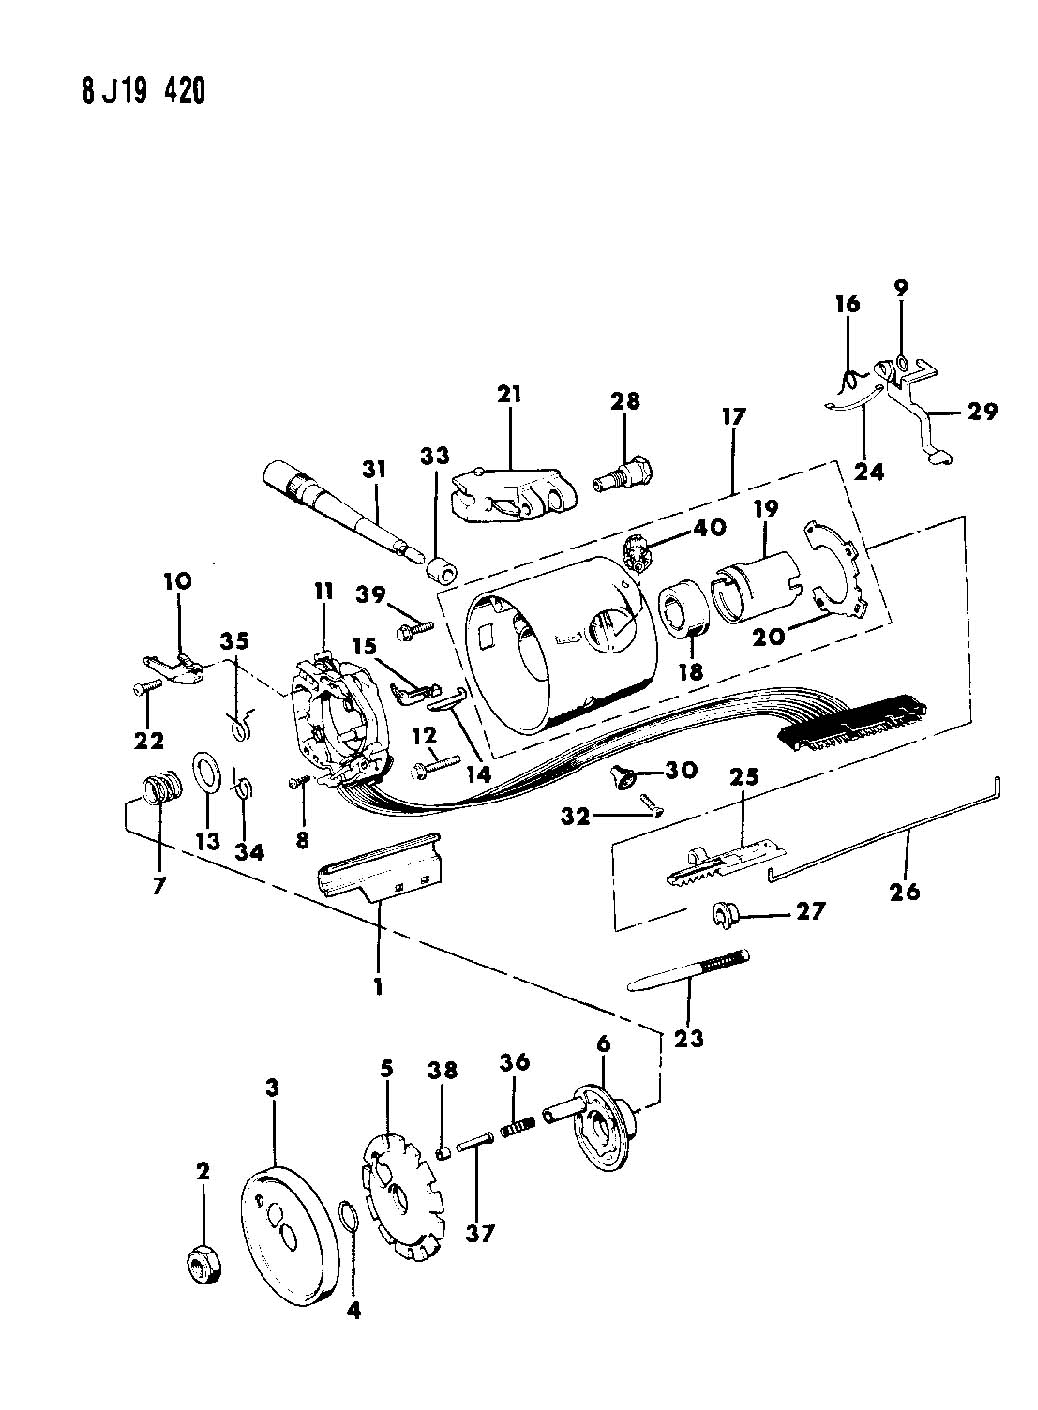 hight resolution of yj steering column wiring diagram simple wiring post rh 16 asiagourmet igb de 89 jeep wrangler steering column 1988 jeep wrangler steering column diagram